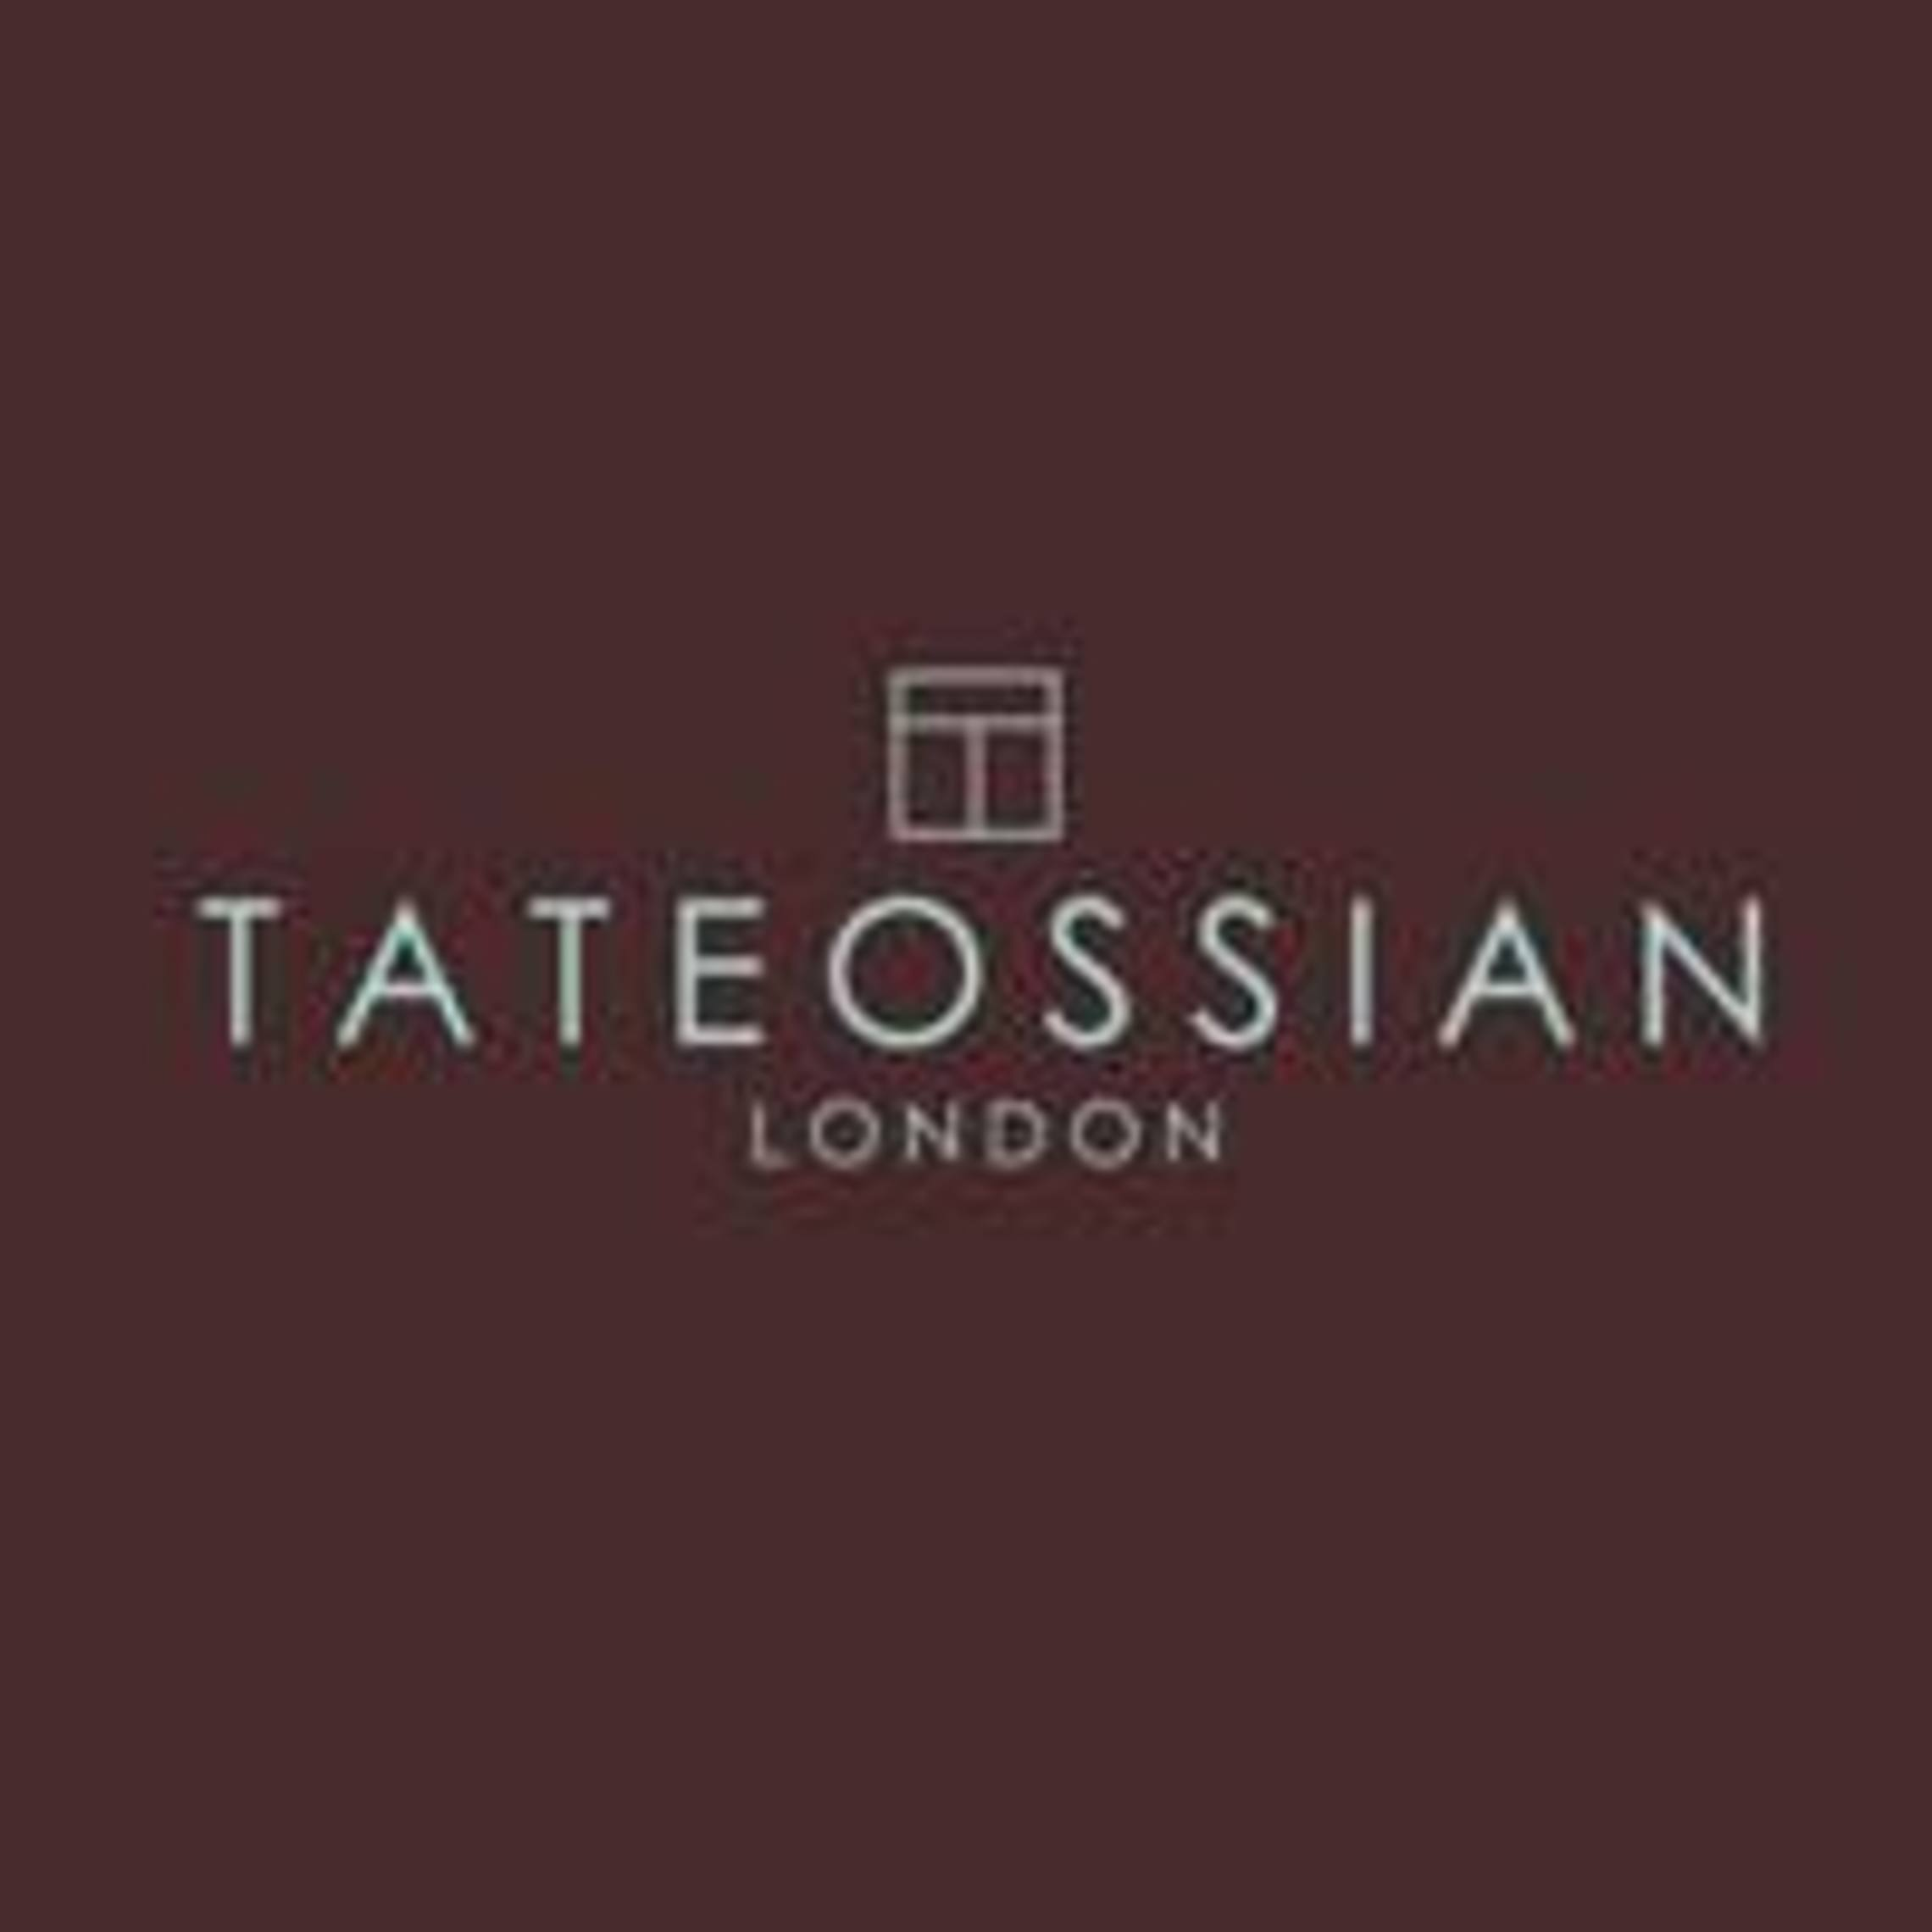 tateossian london- company logo